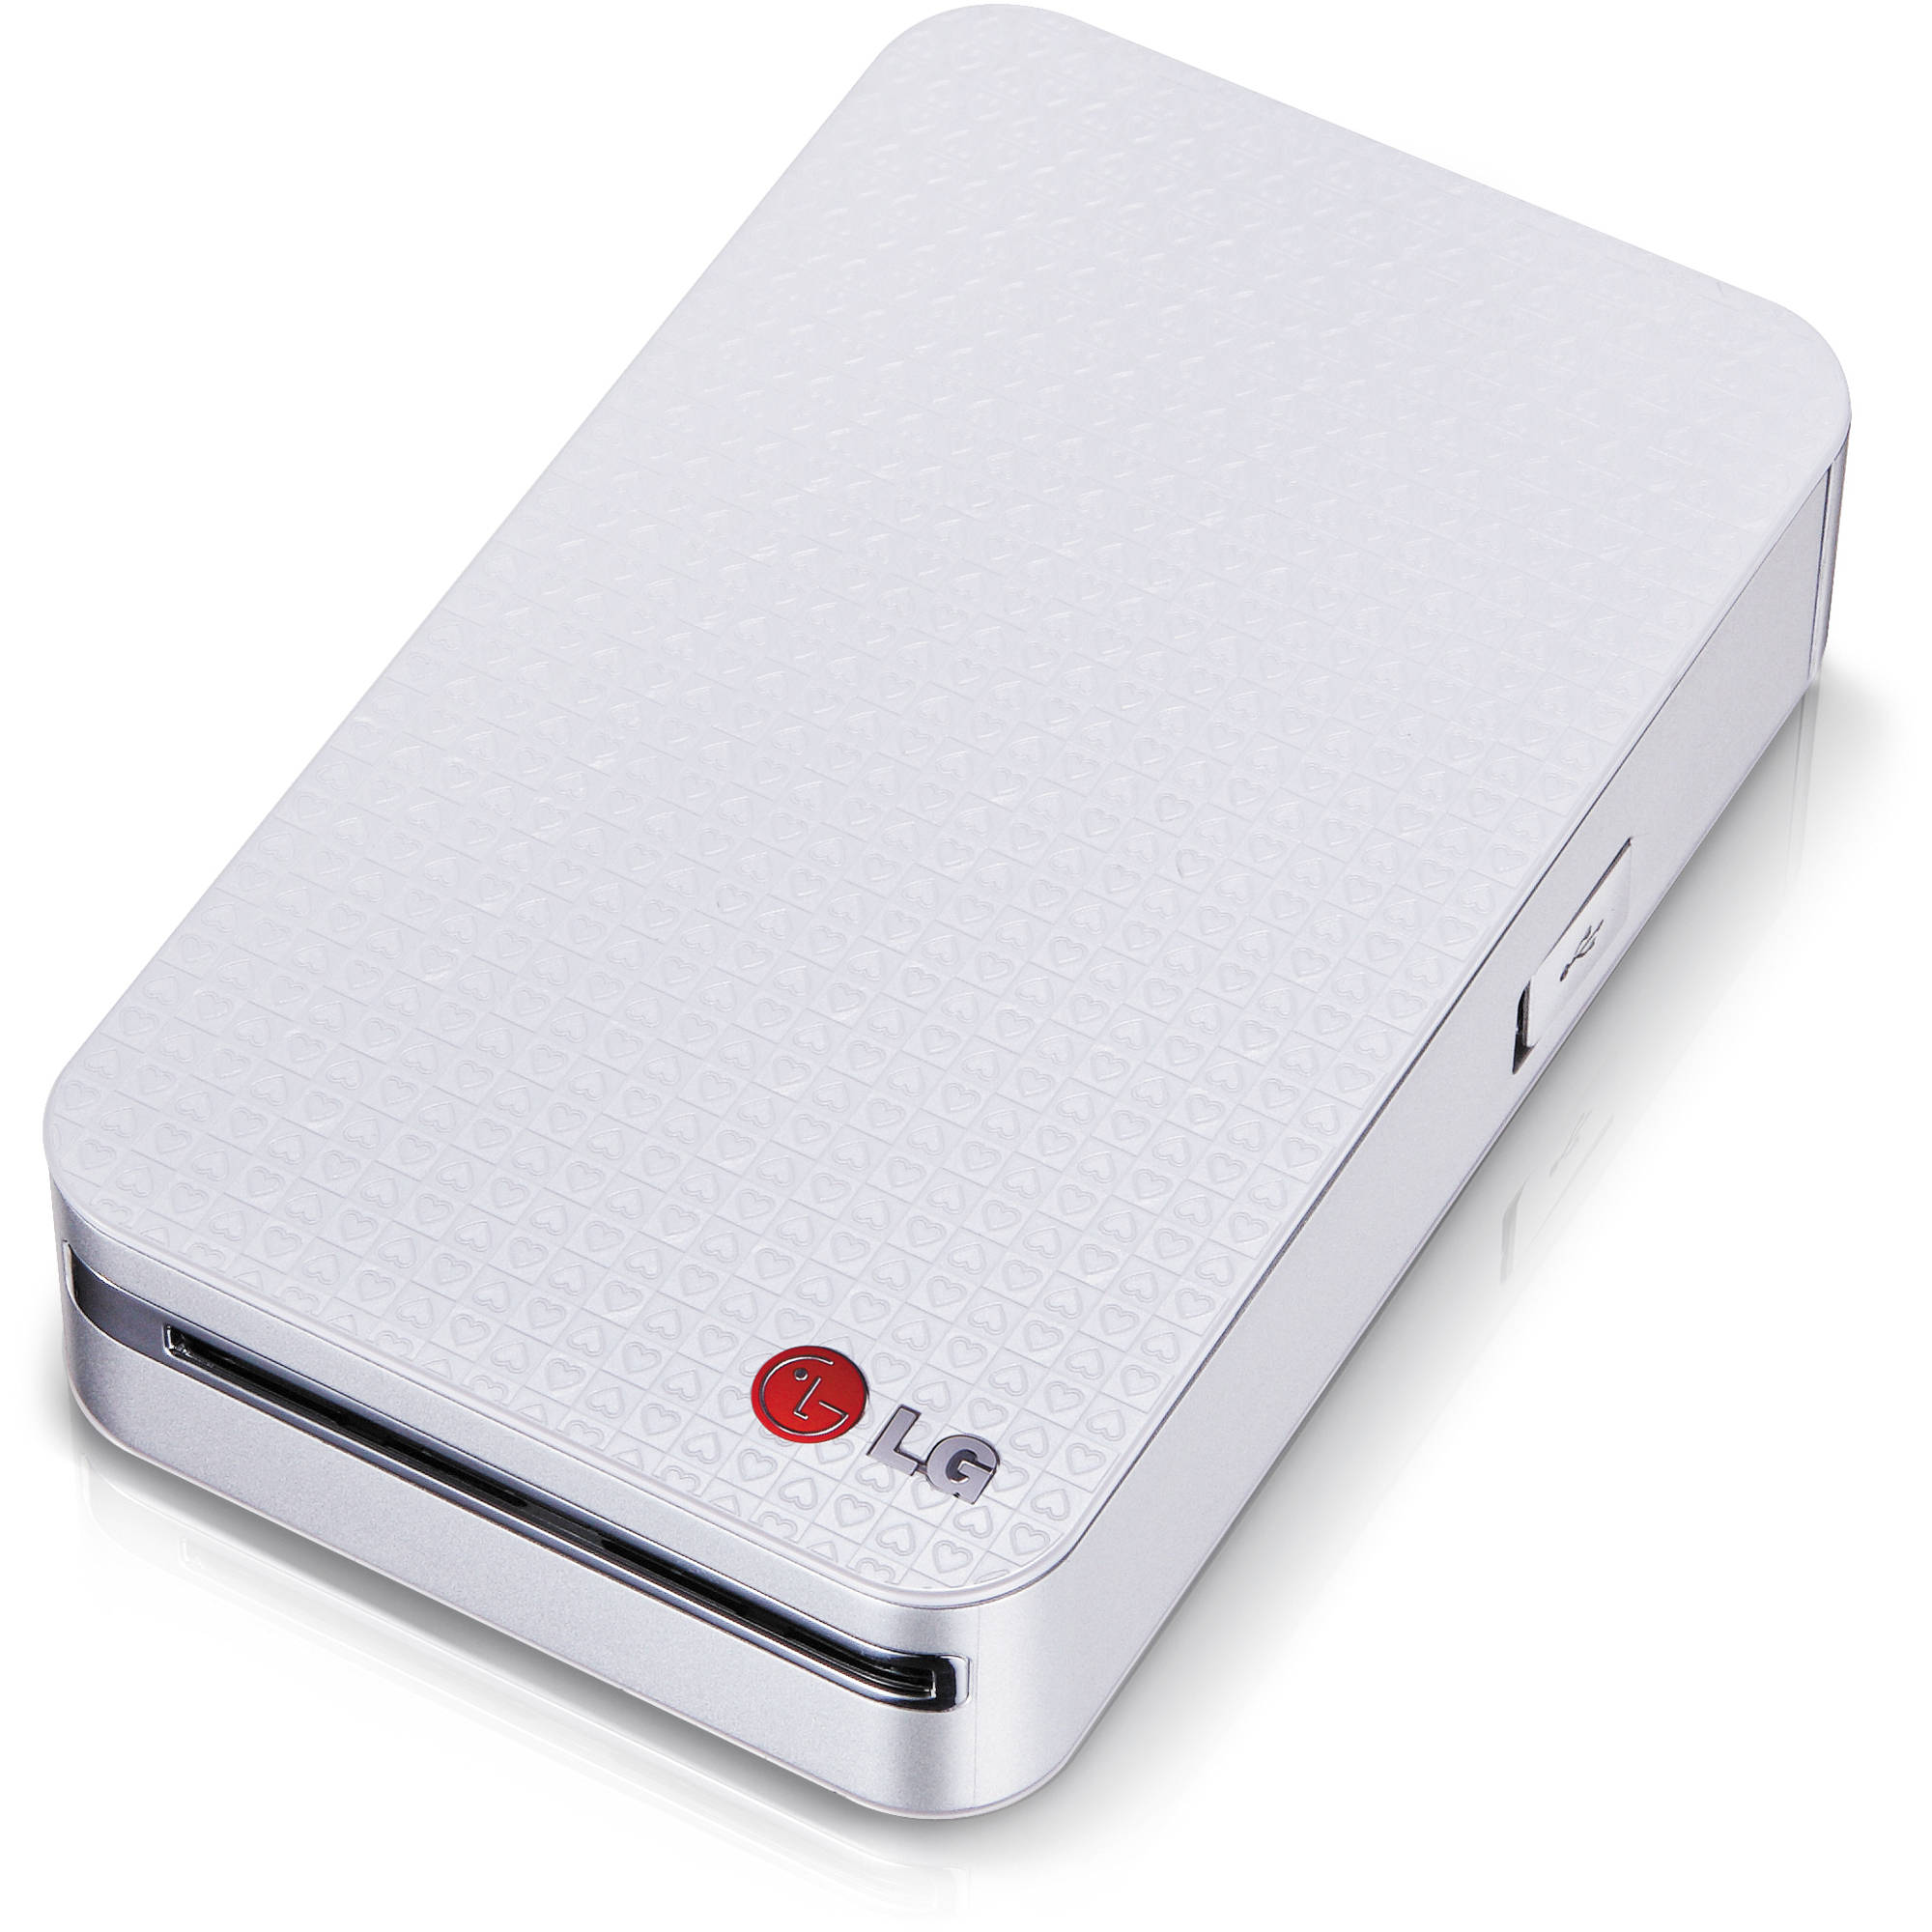 Lg Pocket Photo Printer Silver Pd233 Bh Photo Video